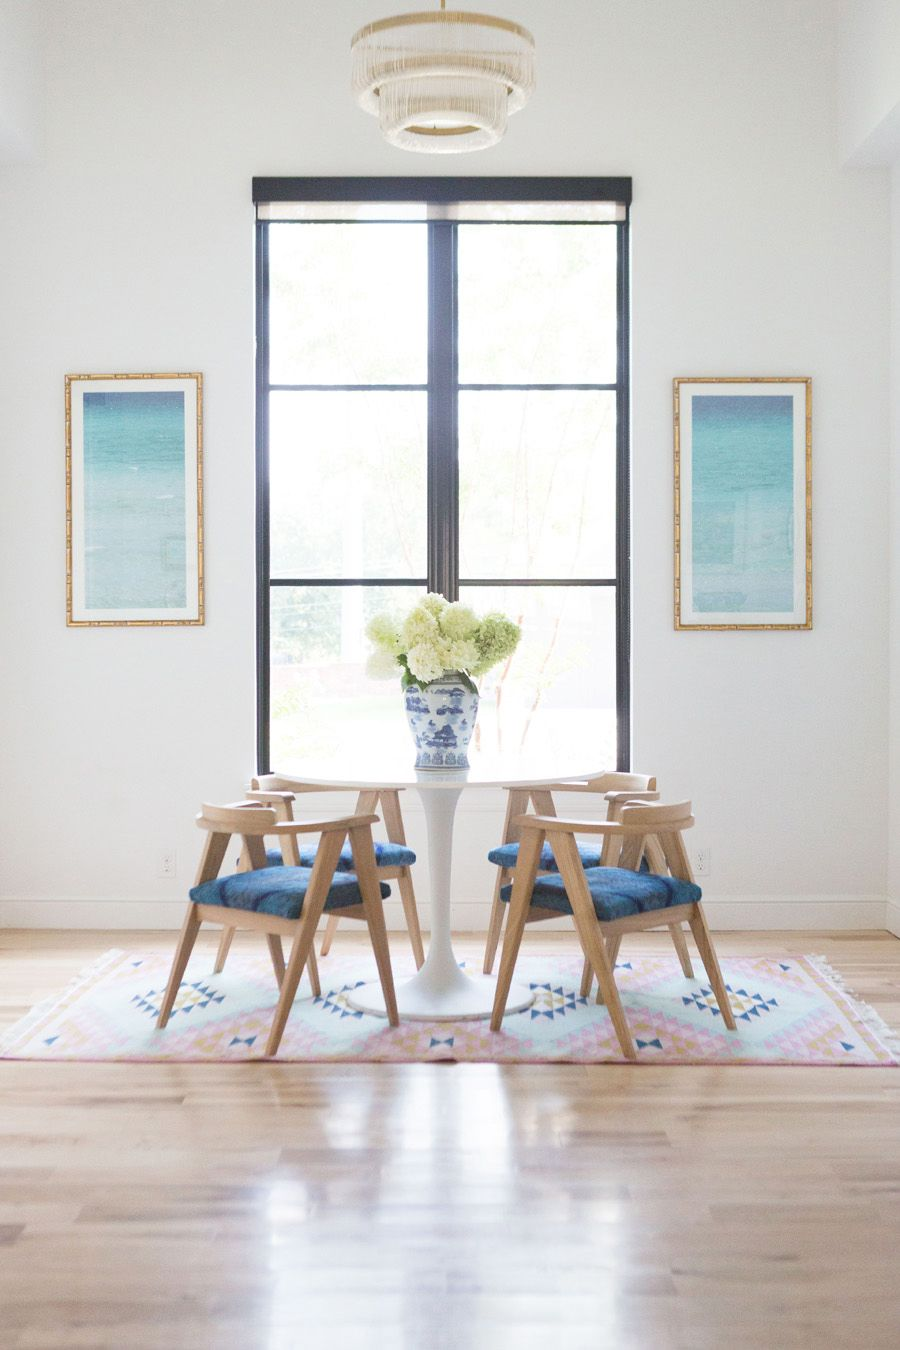 10 Bold Pink And Navy Rugs For Home Decor Wishbone Chairs White Round Table Kitchen